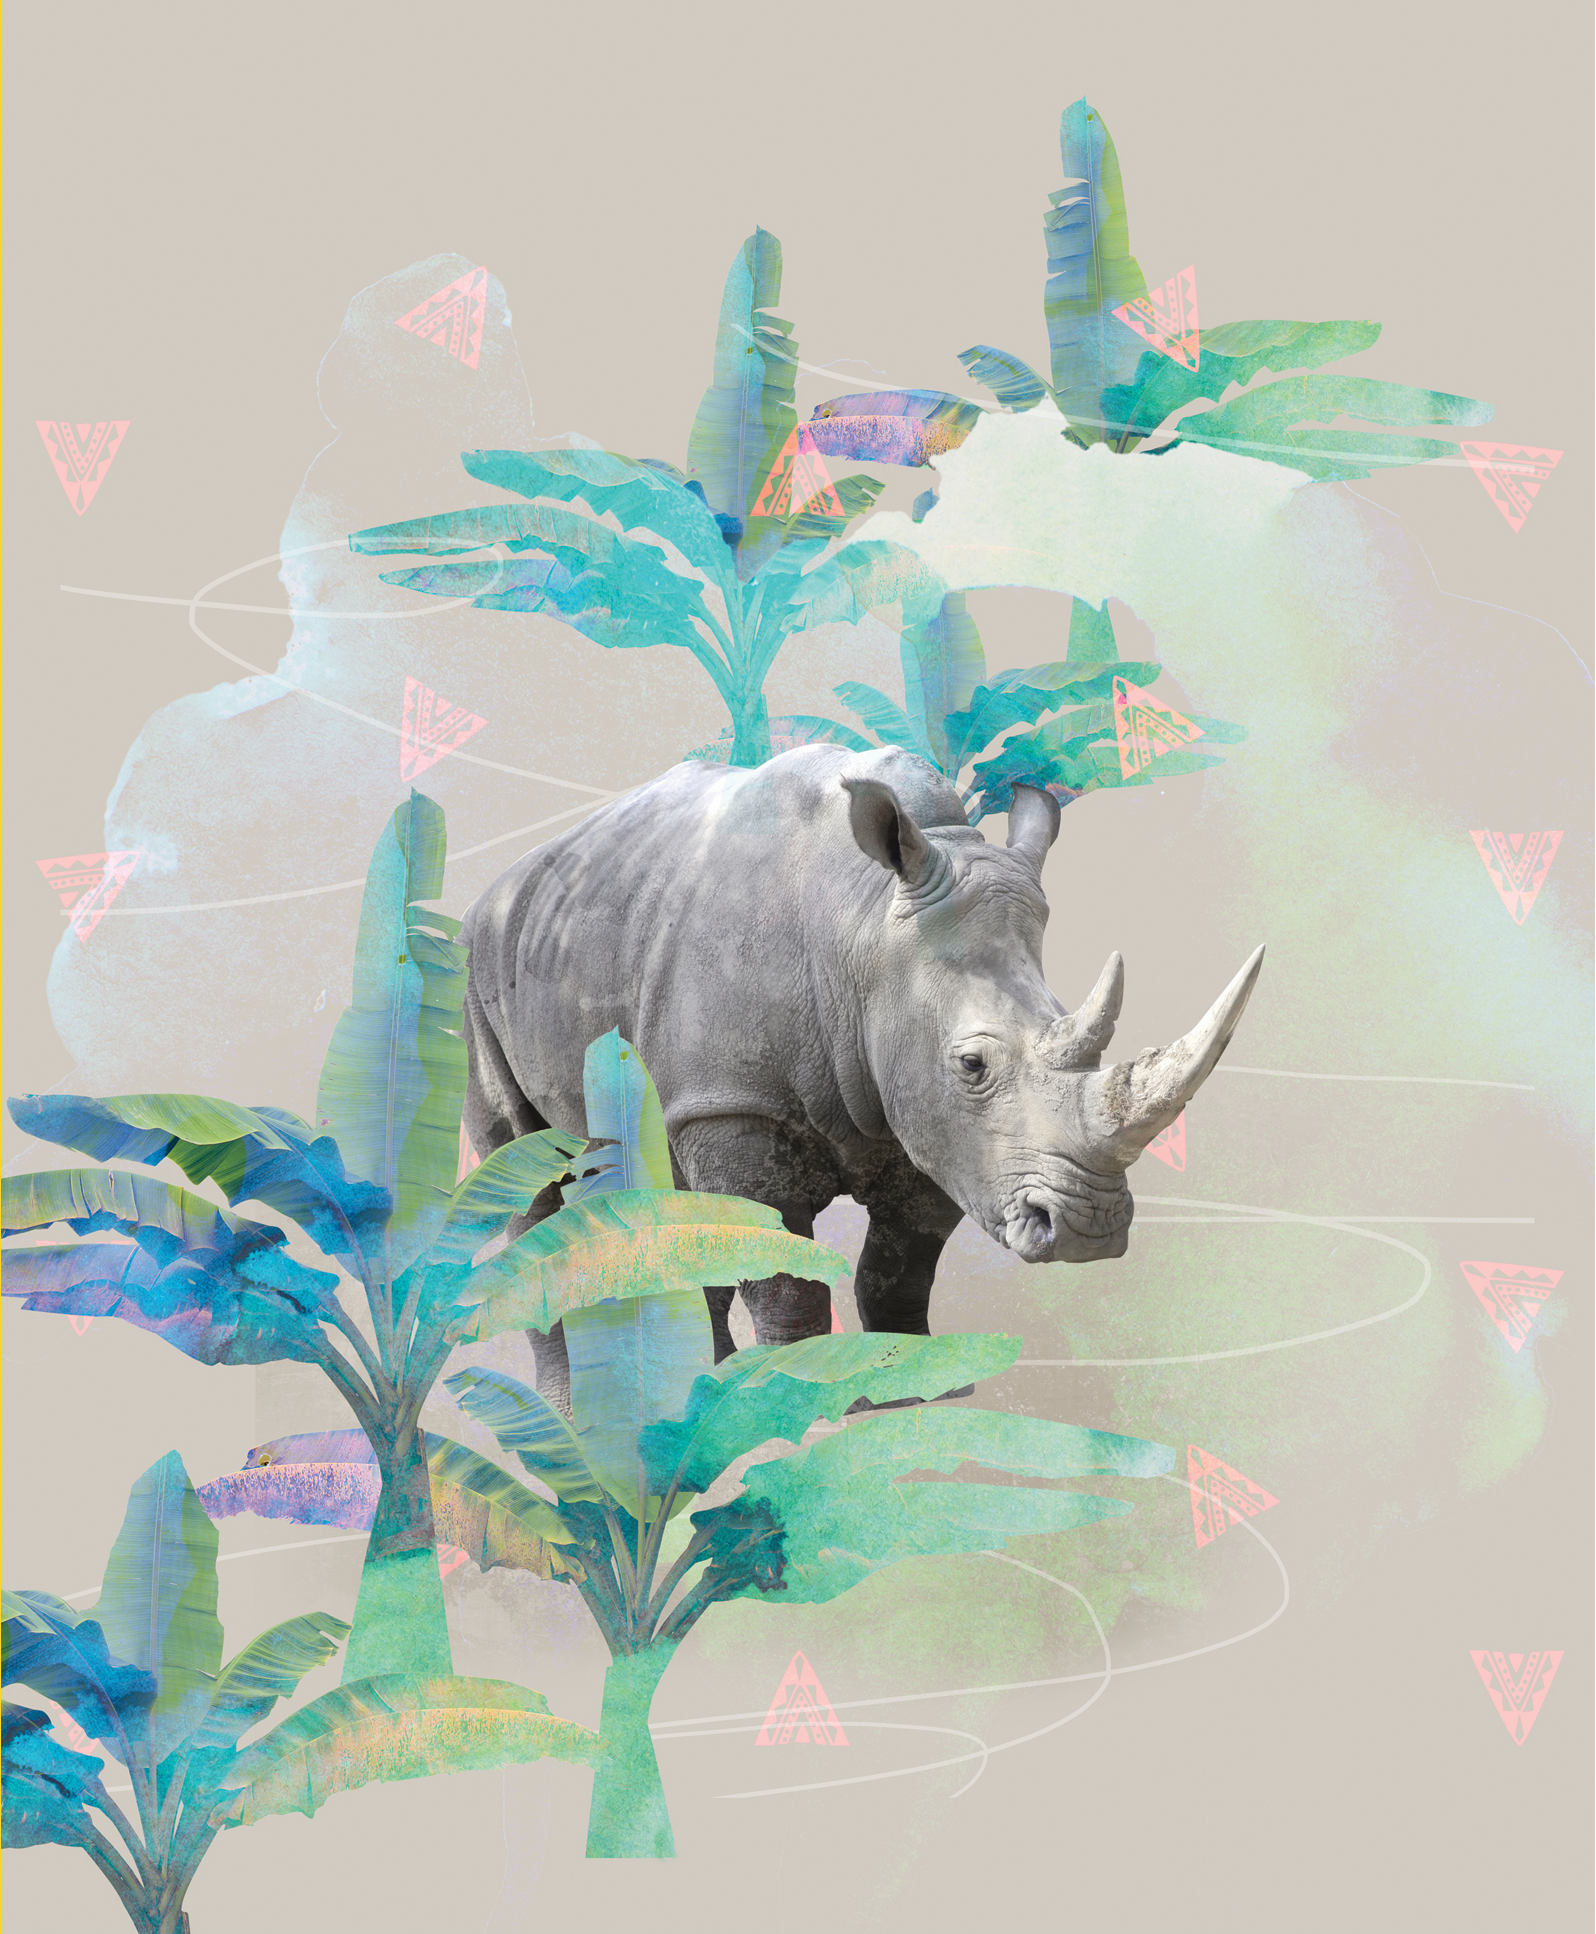 """HOLIDAY RHINO    Remember when dinosaurs were all the rage? Stoic, grand, majestic, these creatures captured many young imaginations, and Rui was no exception. Drawing on the sensitivity and gravitas of dinosaurs that so easily enamored a generation, Rui challenged herself to recreate this in a modern-day animal. Rhinos are the perfect contemporary """"dinosaur!"""" This design is the resulting visual daydream: what would it be like to find a rhino traipsing in a tropical jungle?"""